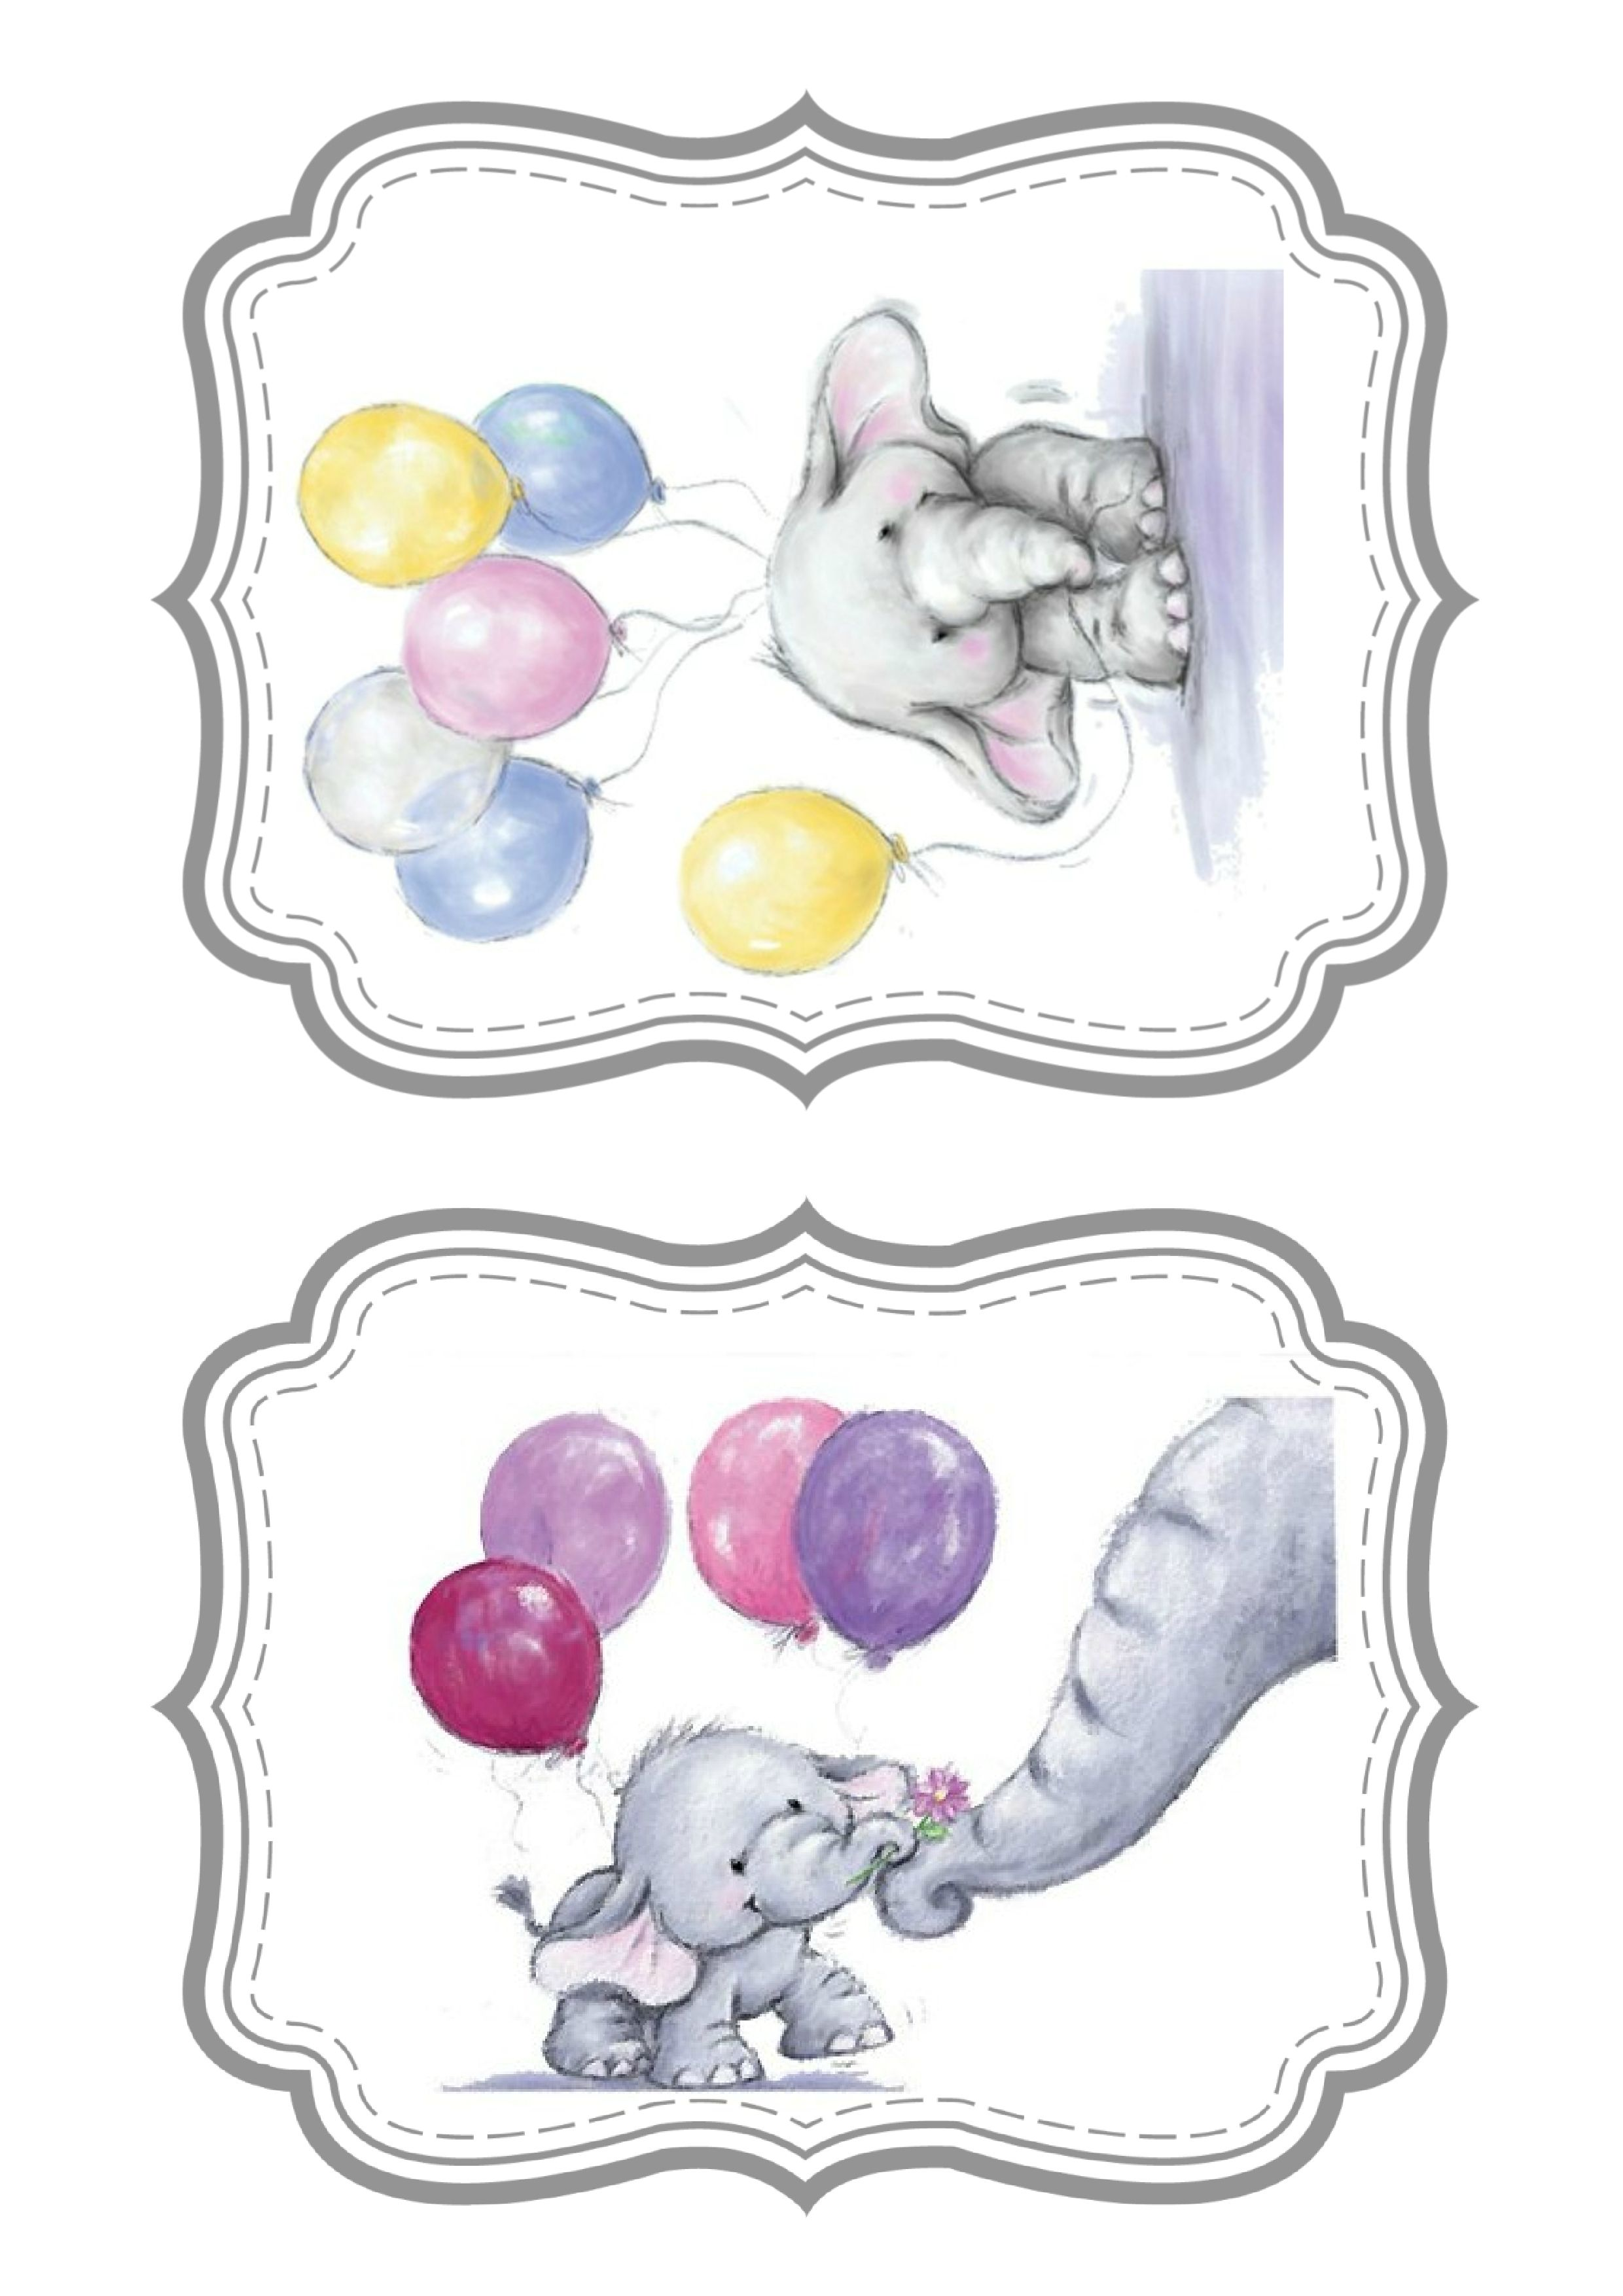 Pin by Roberta Spear on Card Ideas Free baby stuff